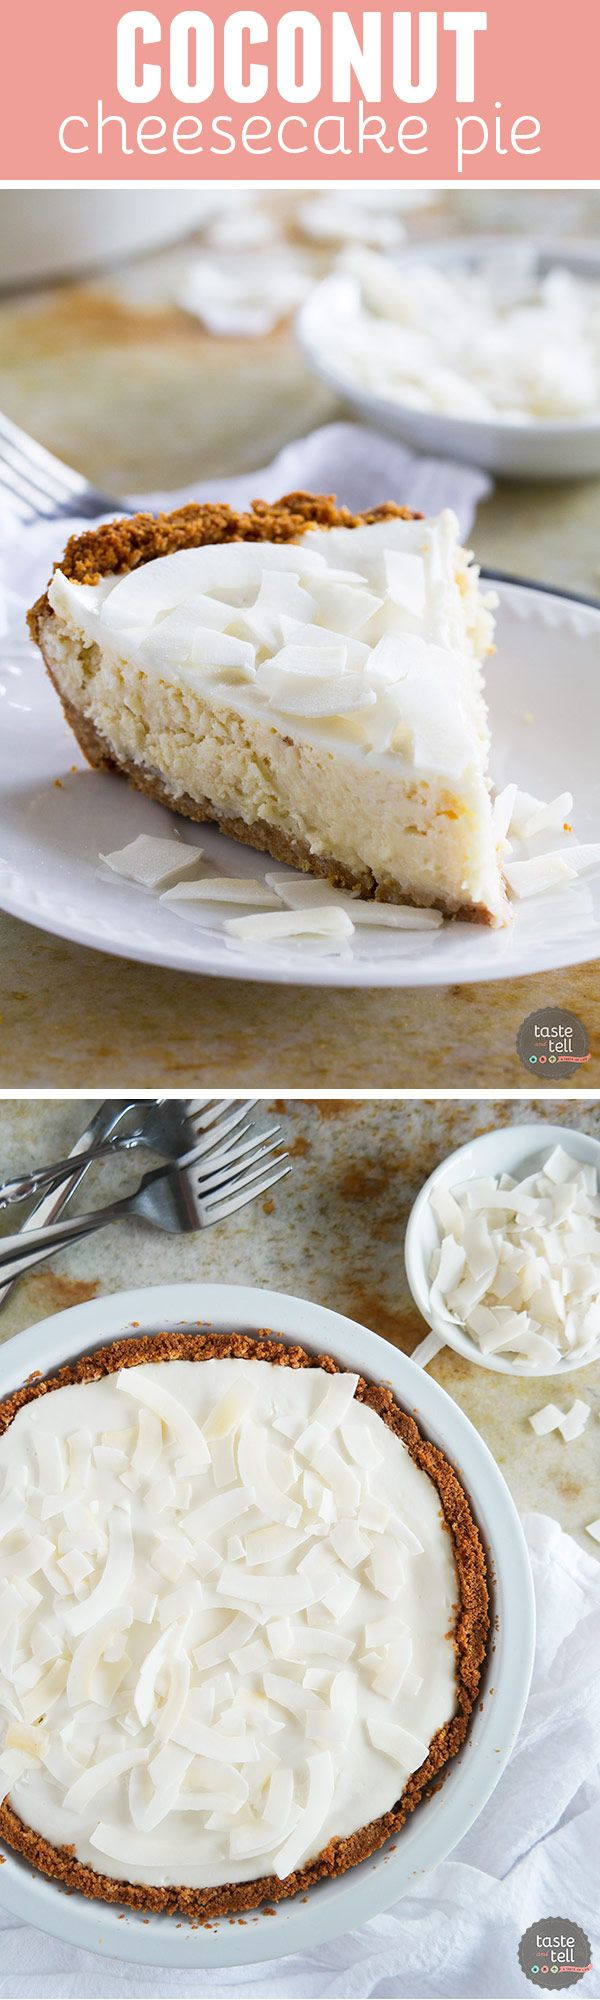 Creamy and coconutty, this Coconut Cheesecake Pie is the perfect dessert for…: